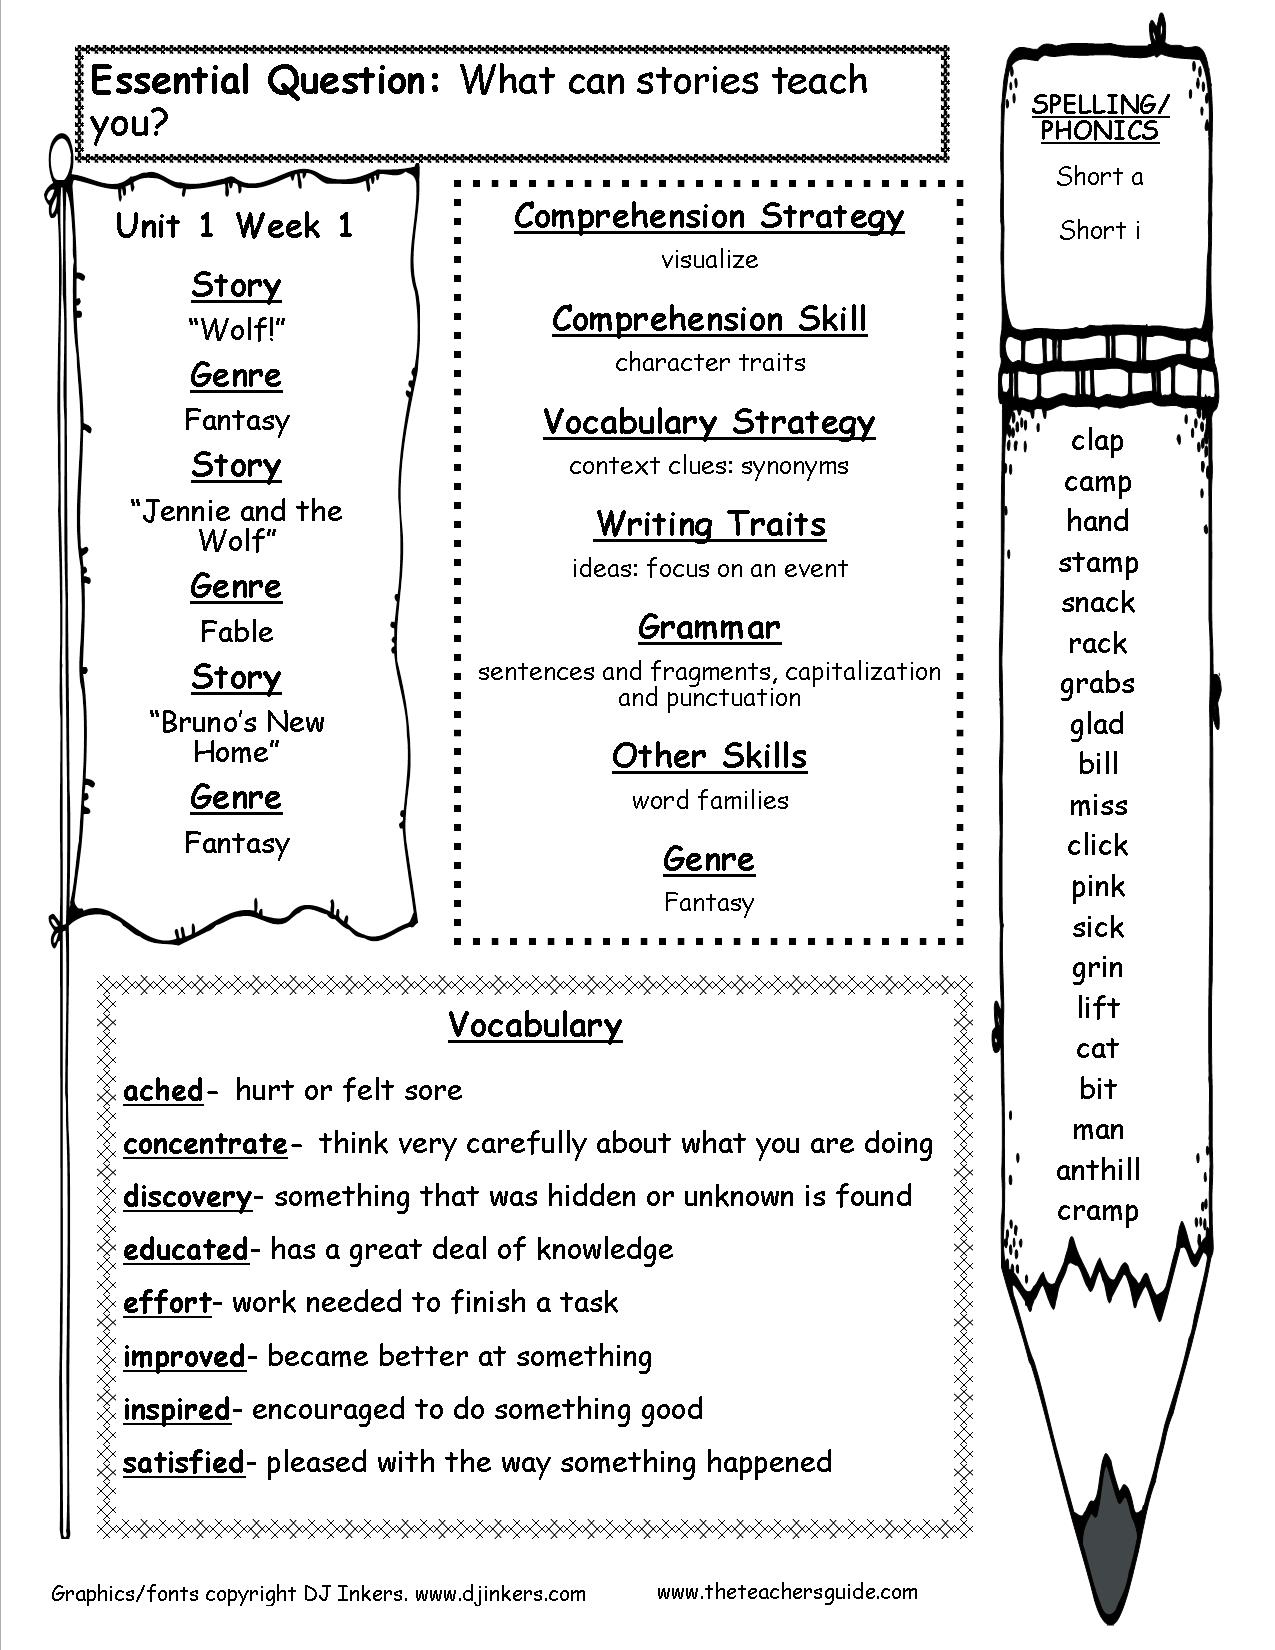 Mcgraw-Hill Wonders Third Grade Resources And Printouts | 3Rd Grade English Worksheets Printable